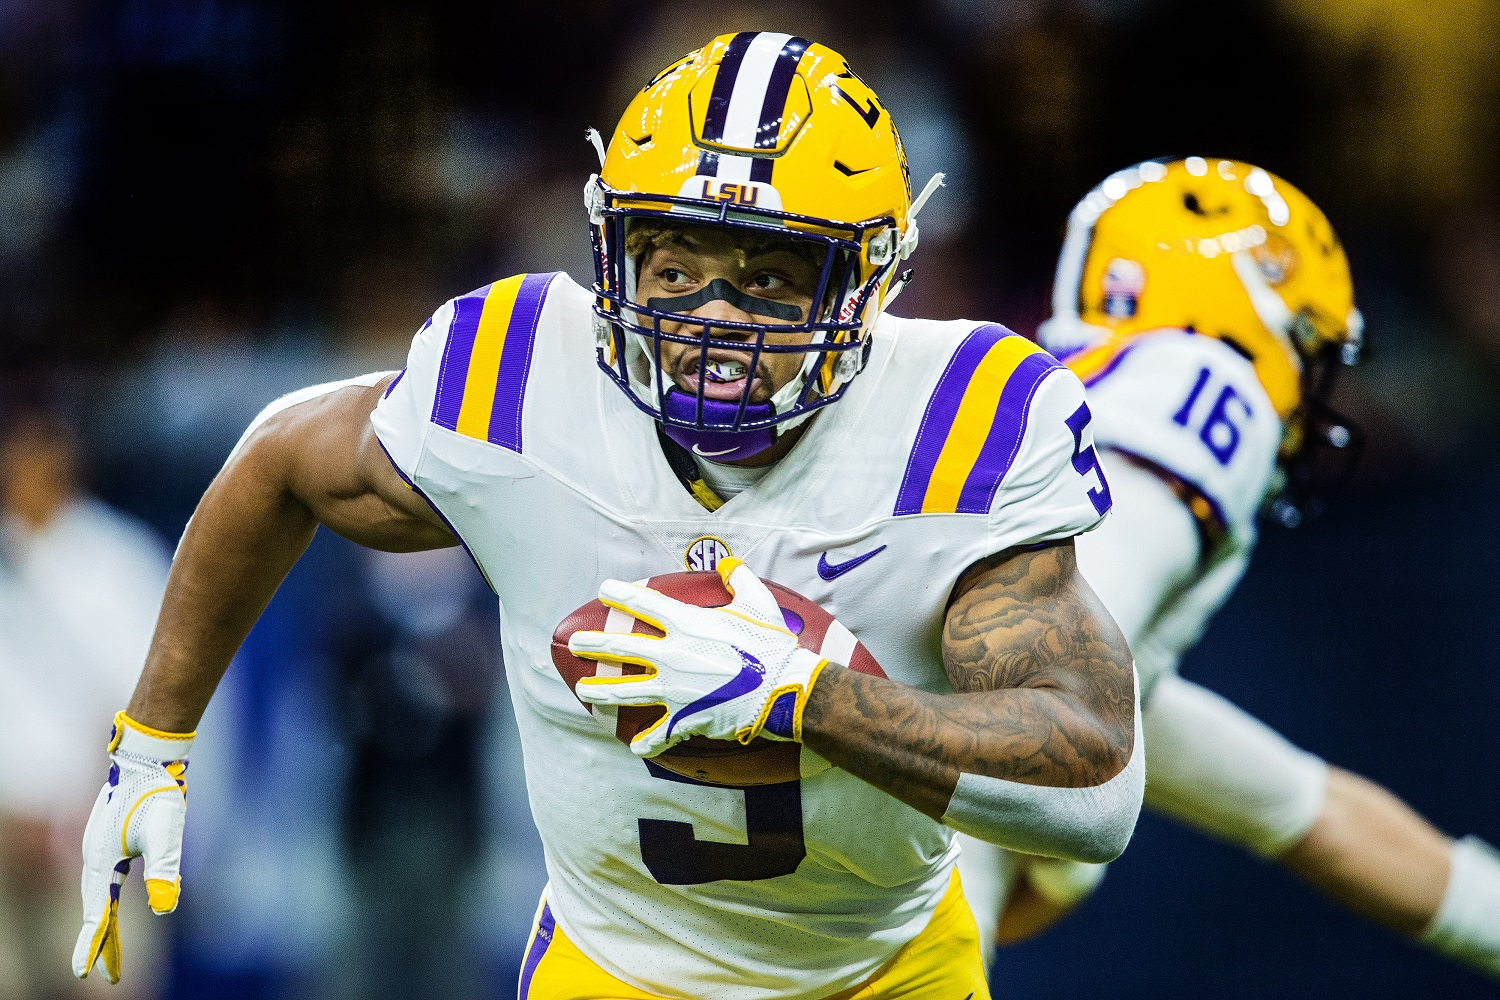 The LSU Tigers Erased 1 of the All-Time Greats From Their Past and Future